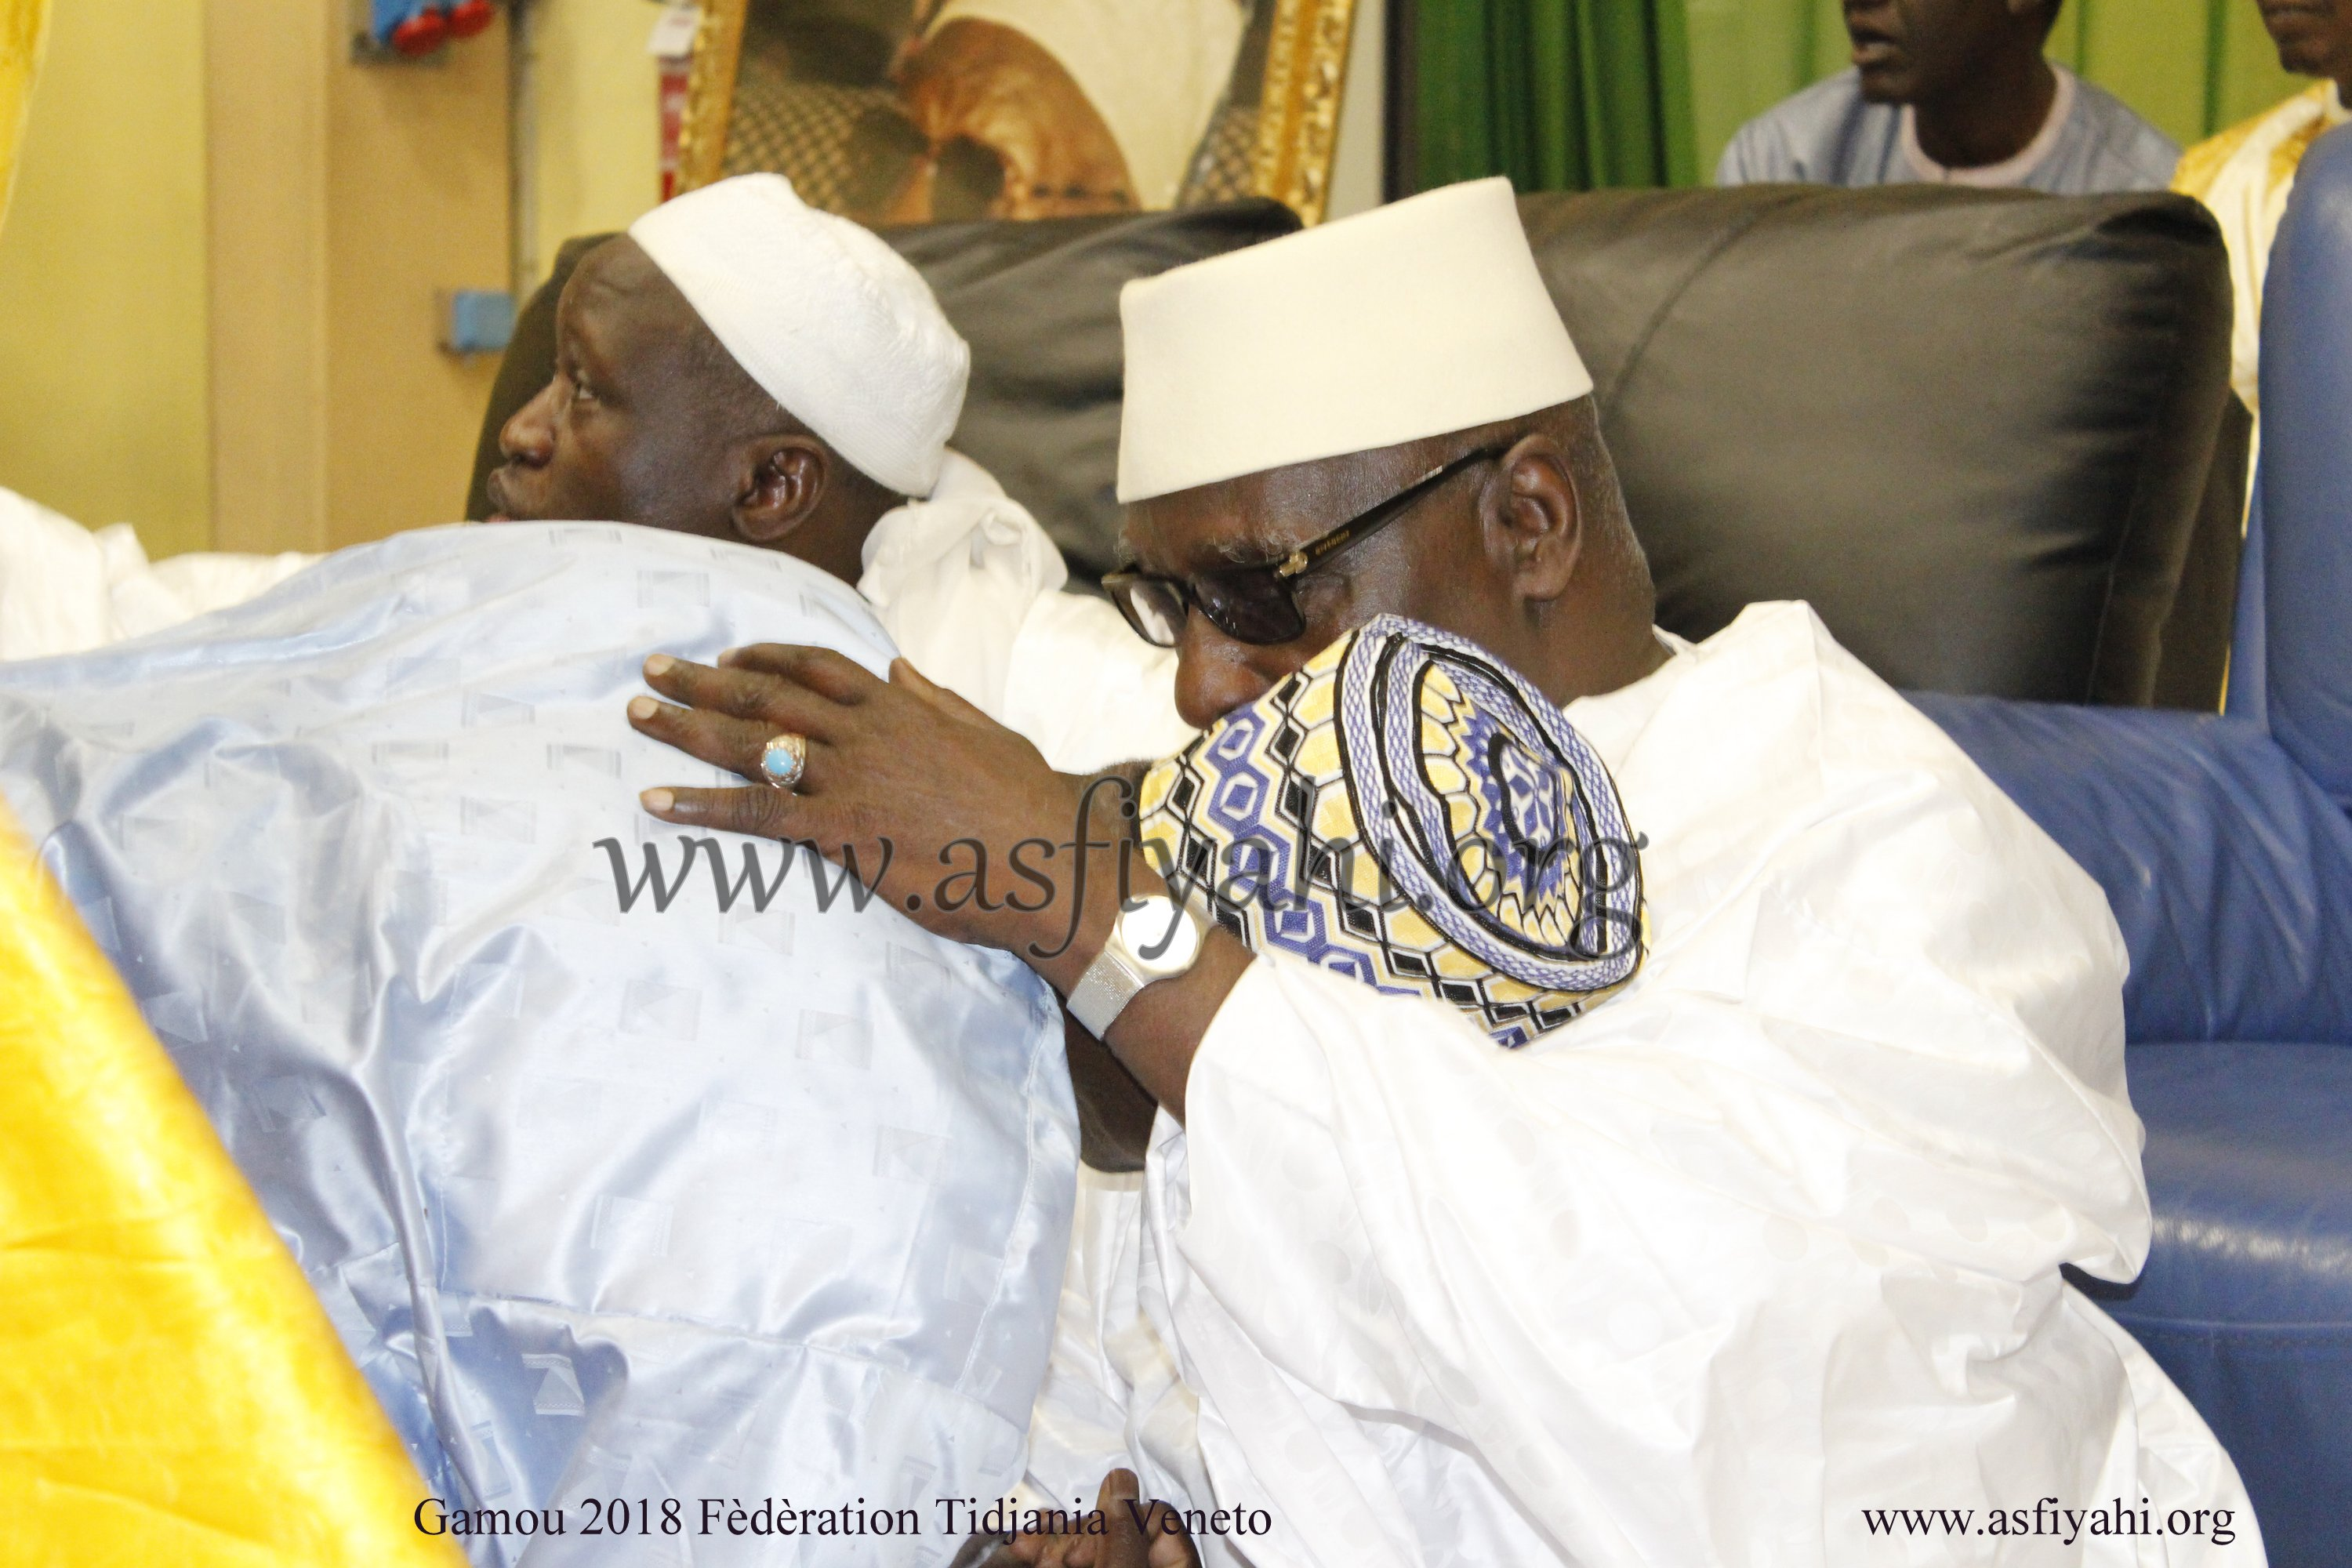 PHOTO - ITALIE - VICENZA : GAMOU FEDERATION TIDJANIA DE VENETO